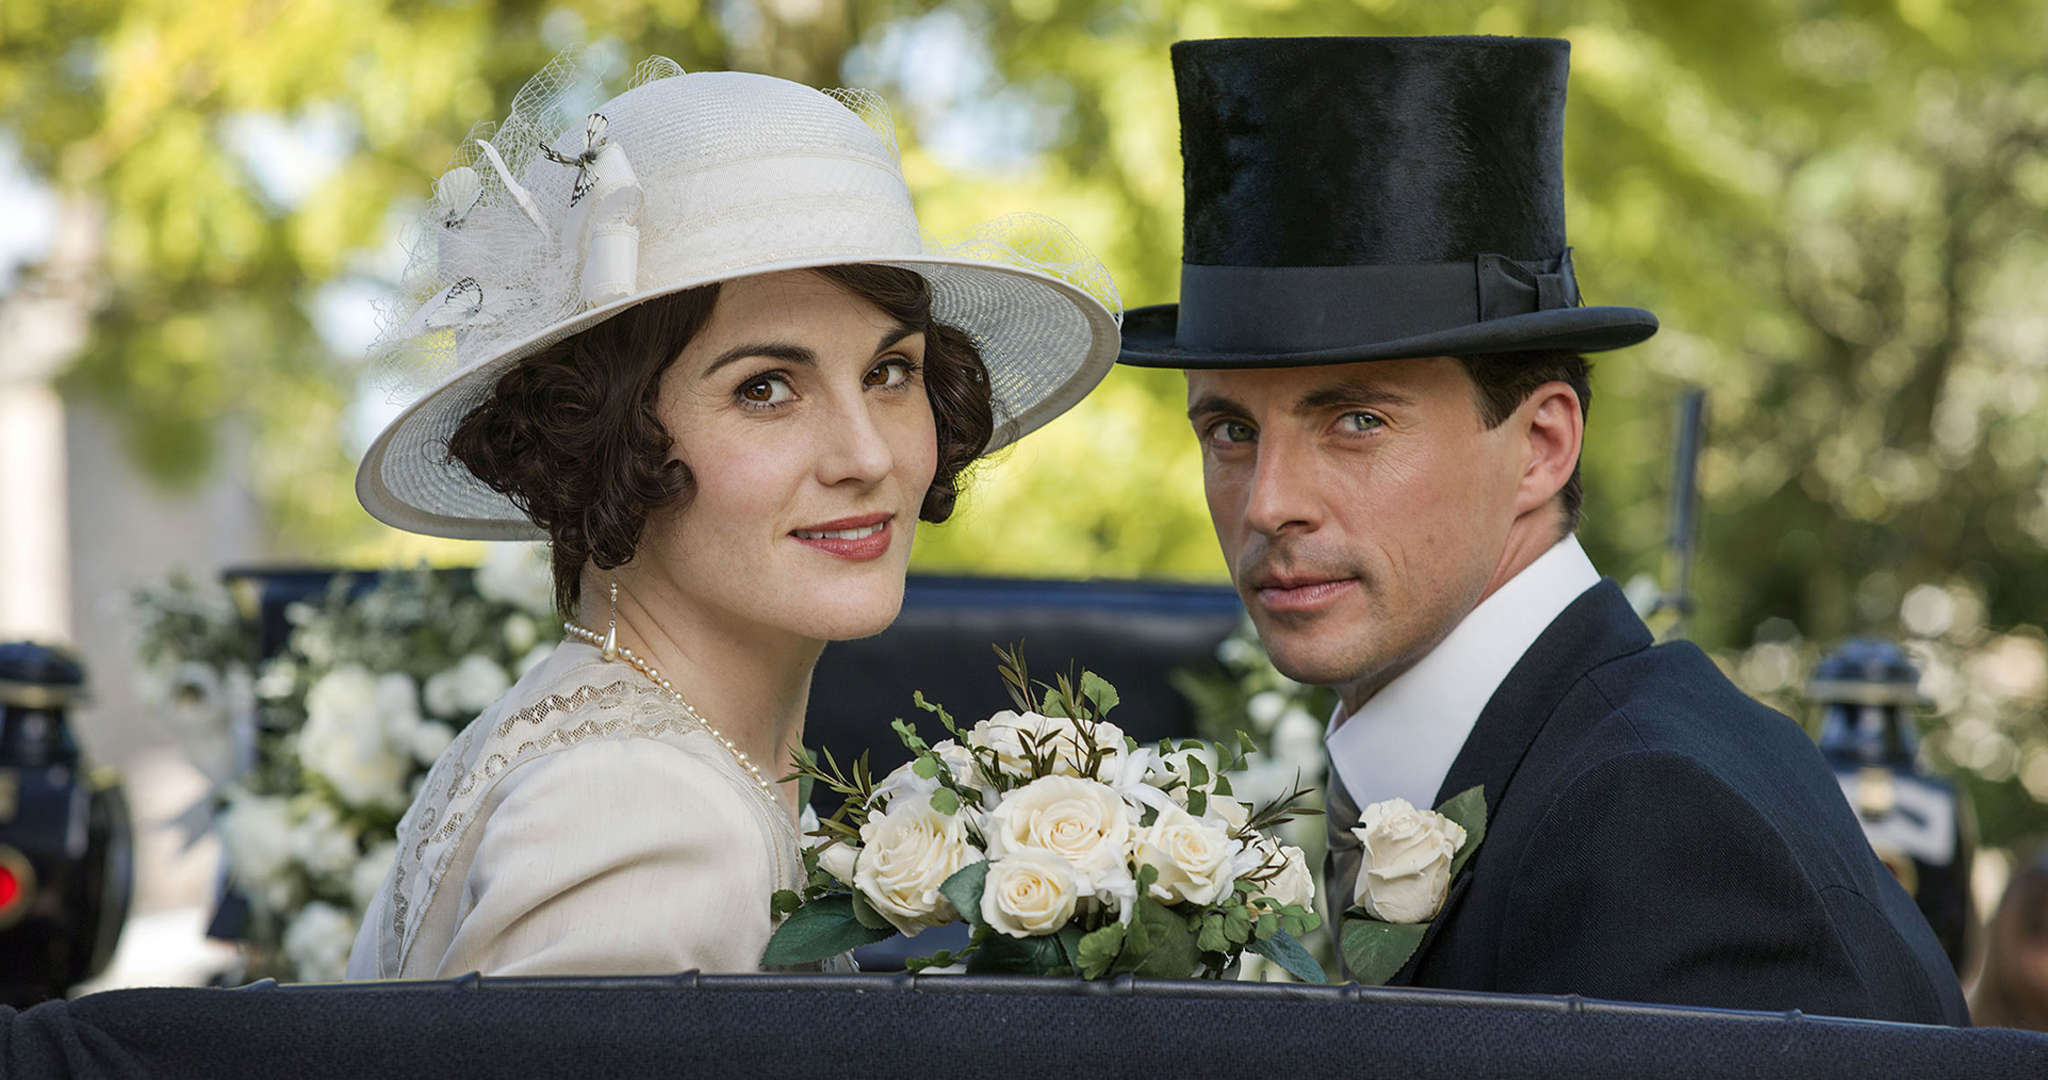 Michelle Dockery and Matthew Goode as newlyweds Lady Mary and Henry Talbot. Is marriage also in the cards for sister Edith in the series finale?